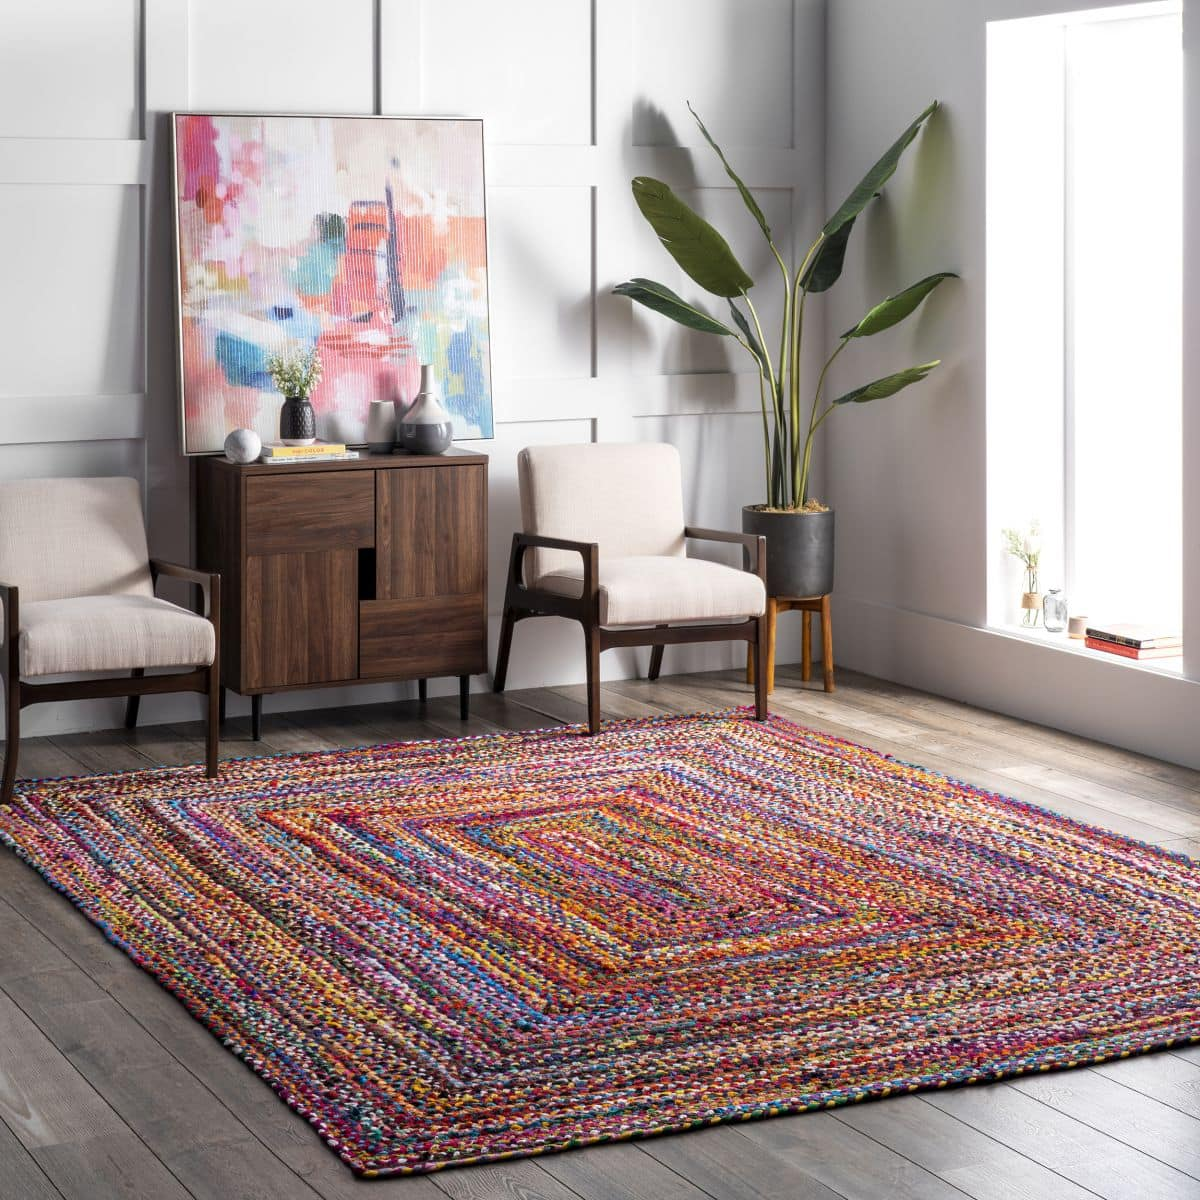 Add a Splash of Bright Color With a Multicolor Braided Area Rug